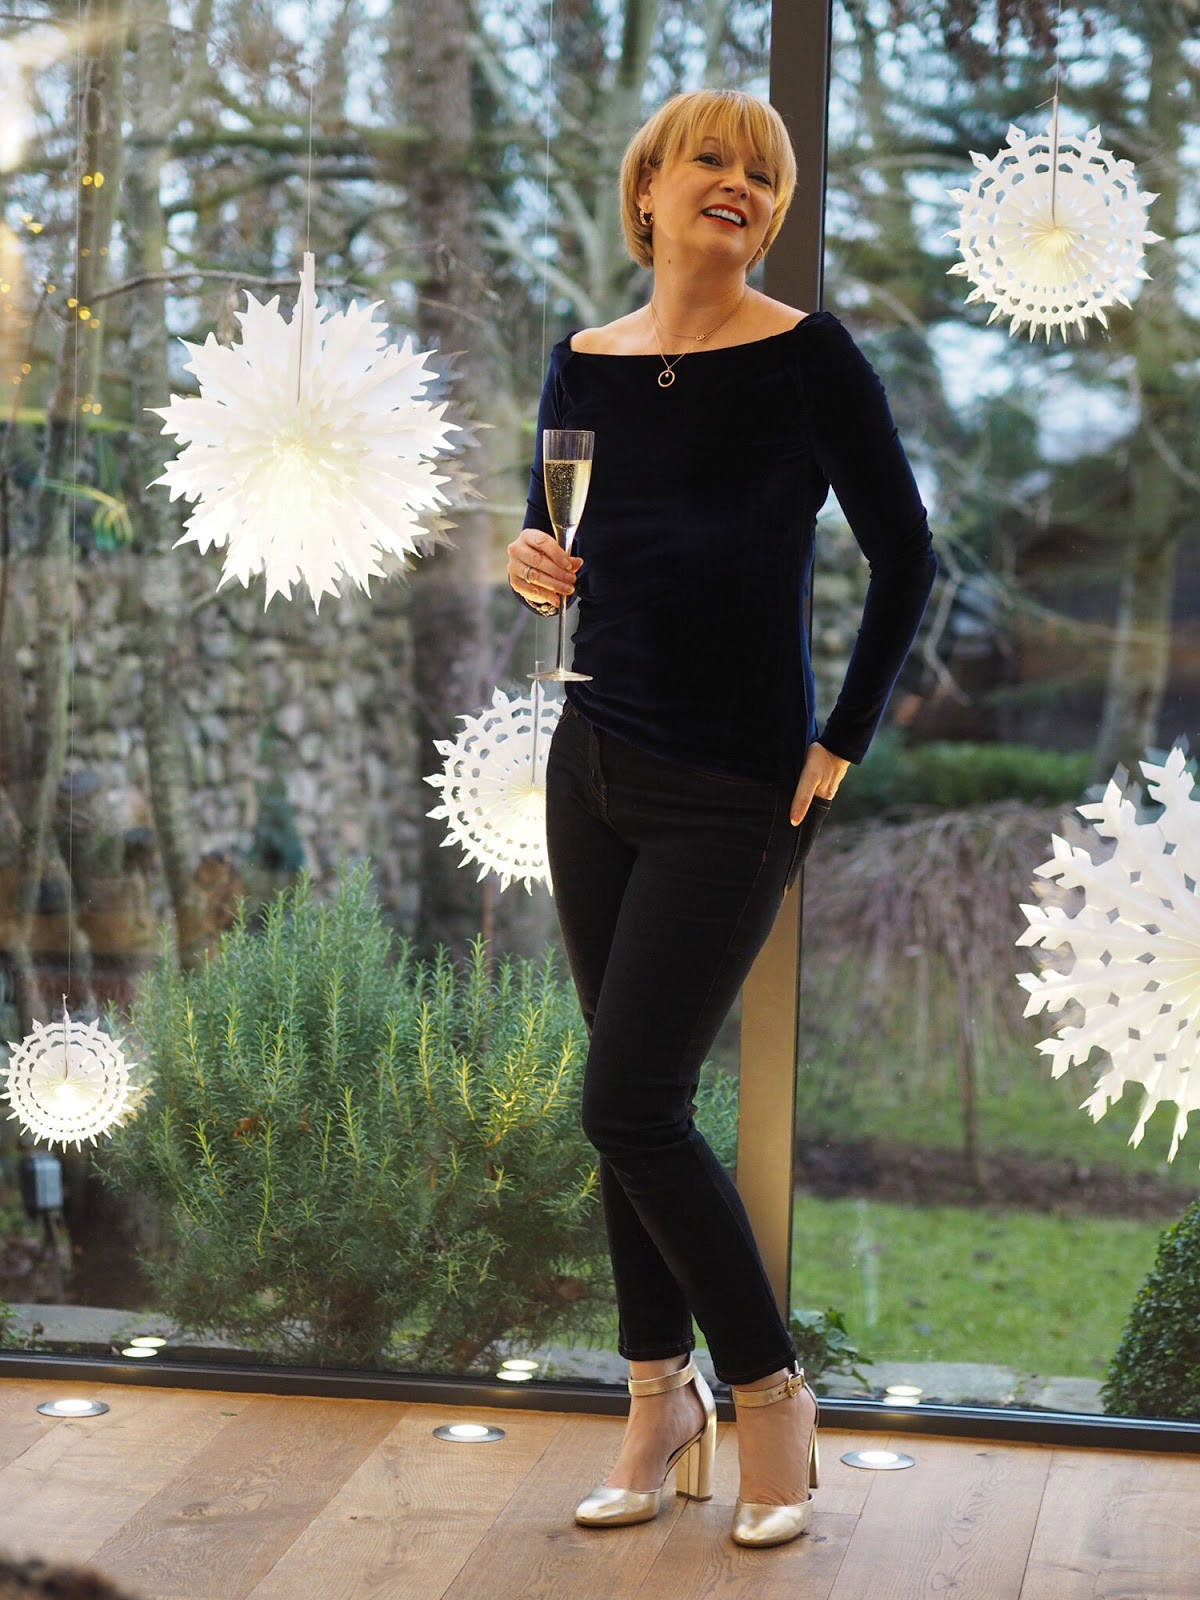 Nikki, Midlife Chic, black trousers and top, Christmas outfit, over 40